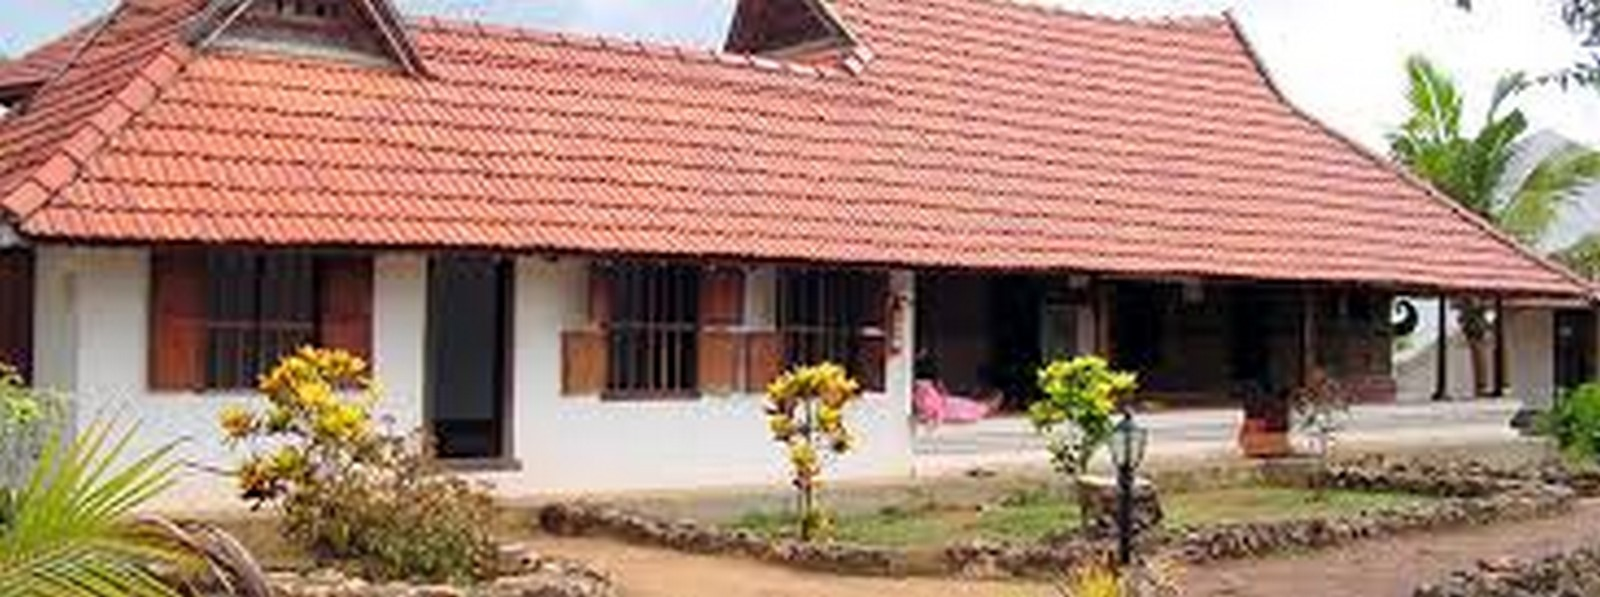 10 Examples of Vernacular architecture in South India - Sheet5